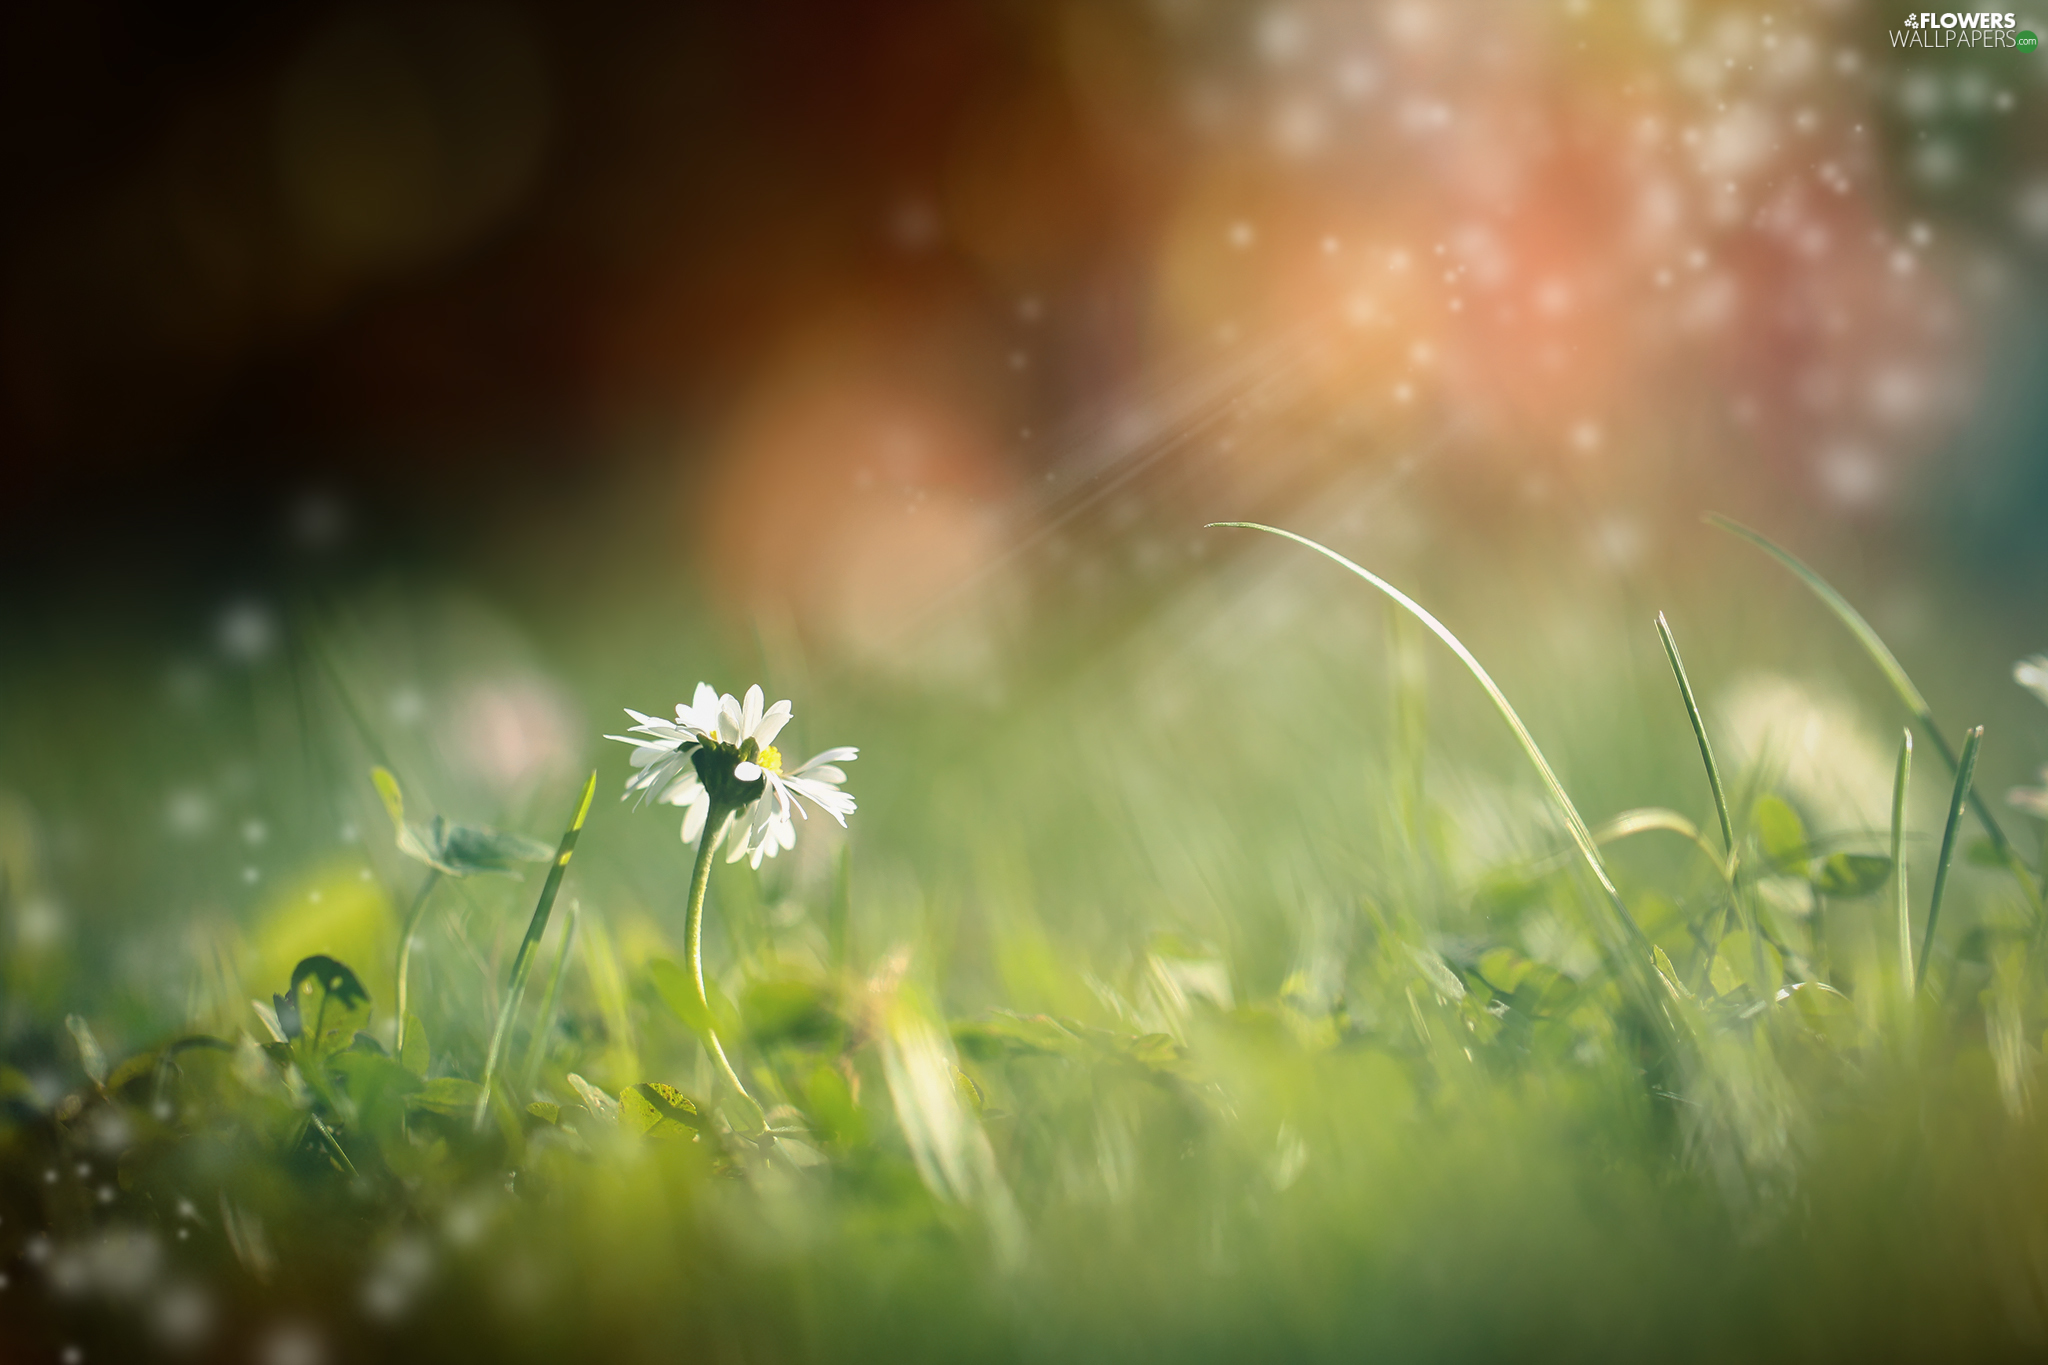 grass, Plants, White, Colourfull Flowers, daisy